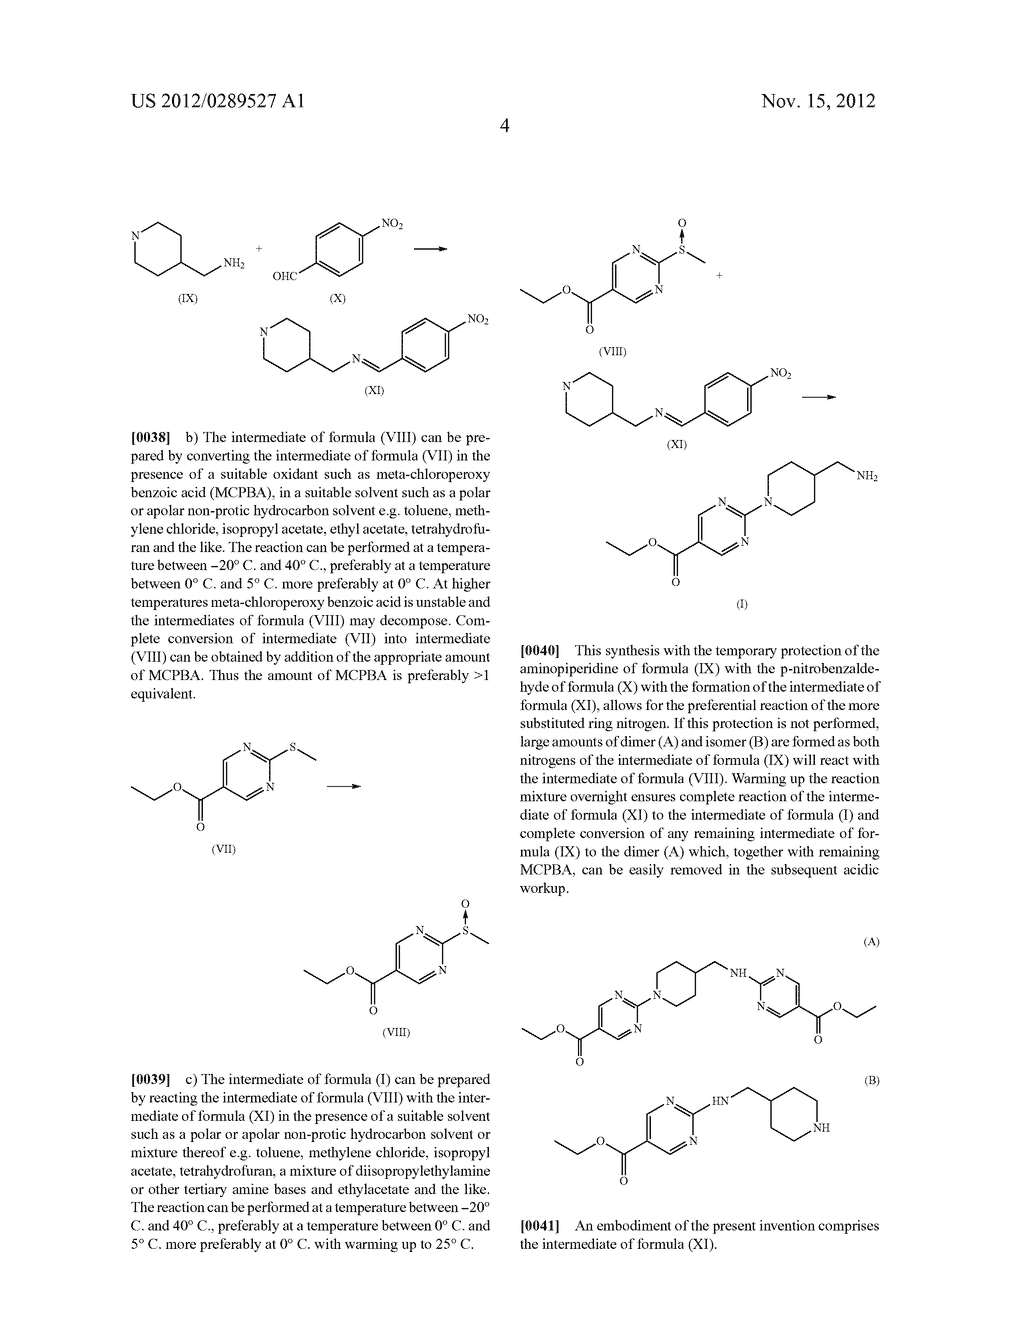 MONO-HYDROCHLORIC SALTS OF AN INHIBITOR OF HISTONE DEACETYLASE - diagram, schematic, and image 21